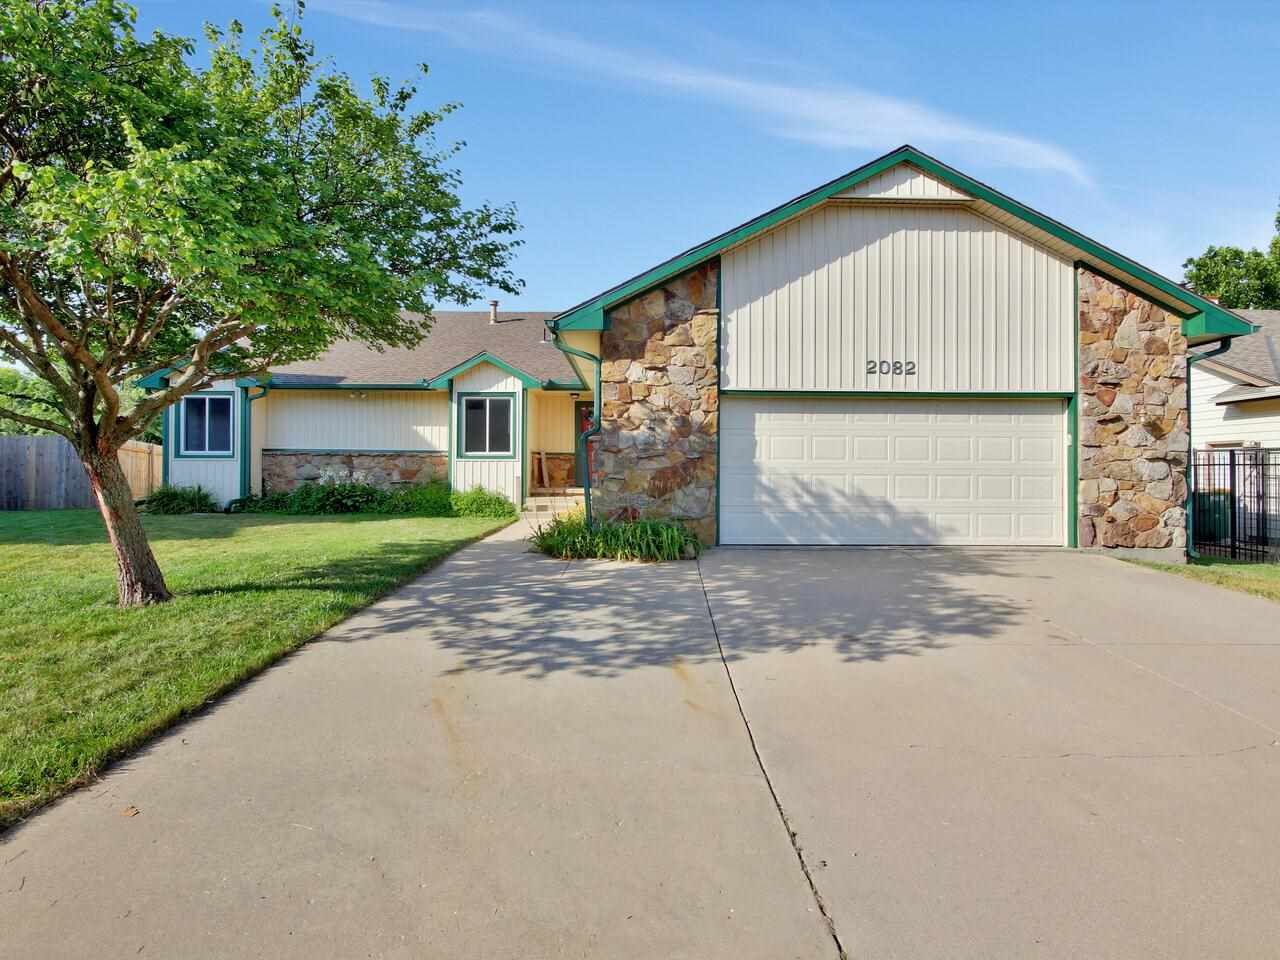 AMAZING SPACE for the Price! Don't miss this well-maintained home in this delightful SE Wichita neig